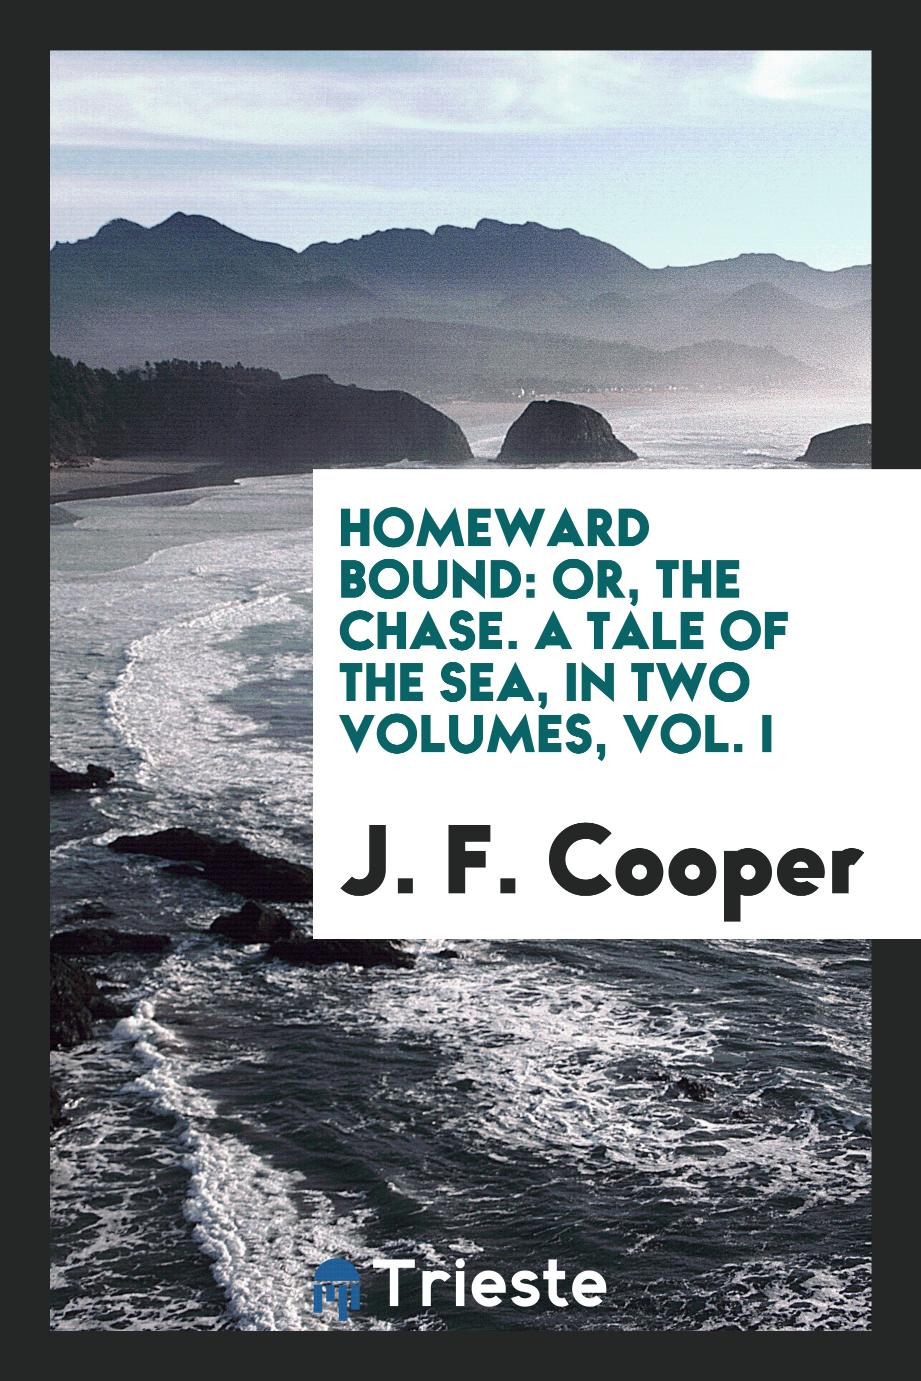 Homeward bound: or, The chase. A tale of the sea, in two volumes, Vol. I